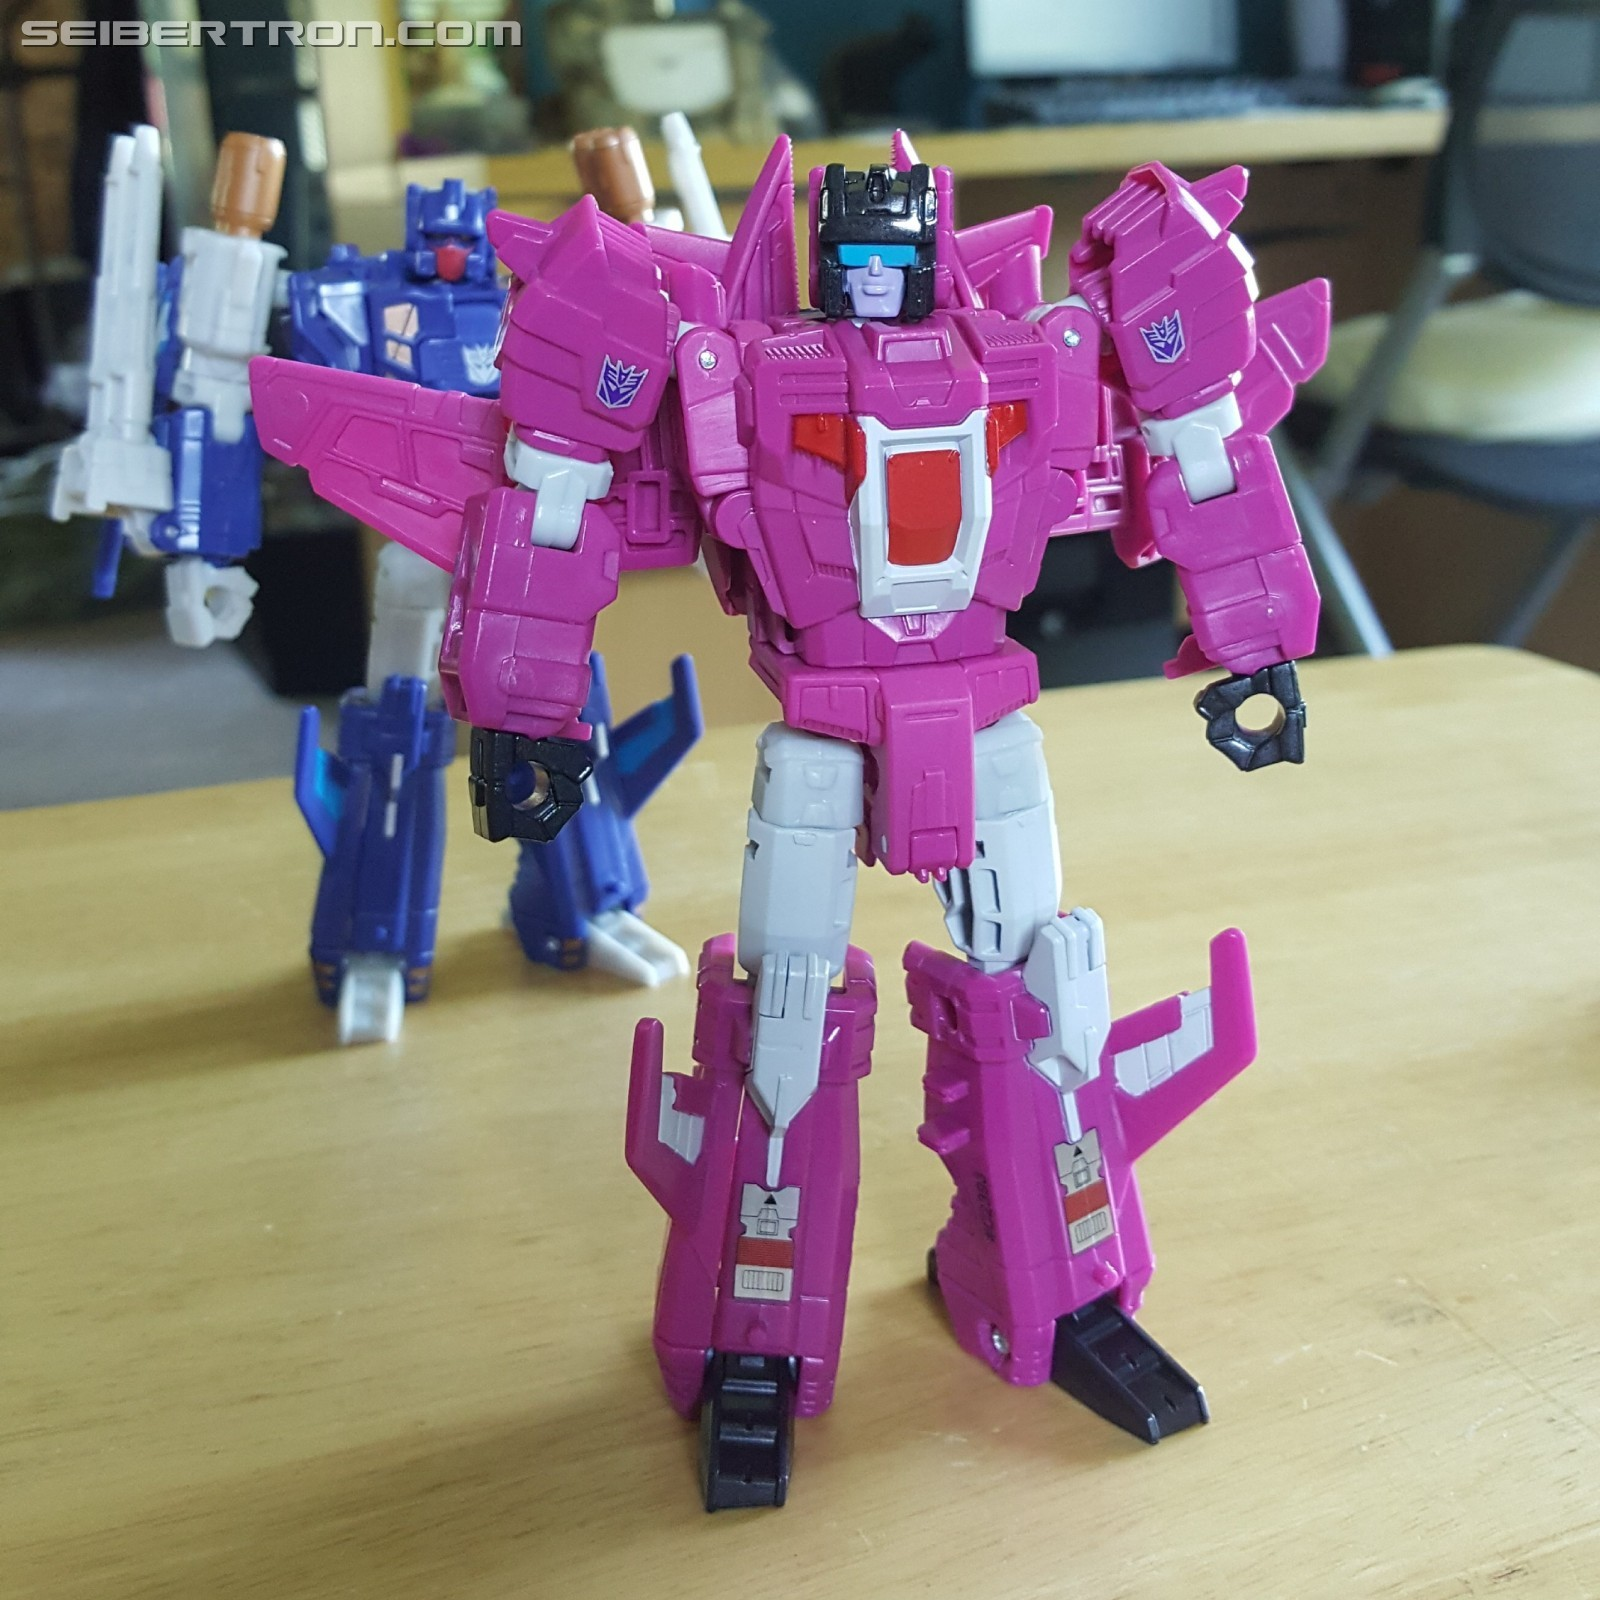 Transformers News: Domestic Listings for Takara Transformers LG-EX Big Powered and Comparison to G1 Figures